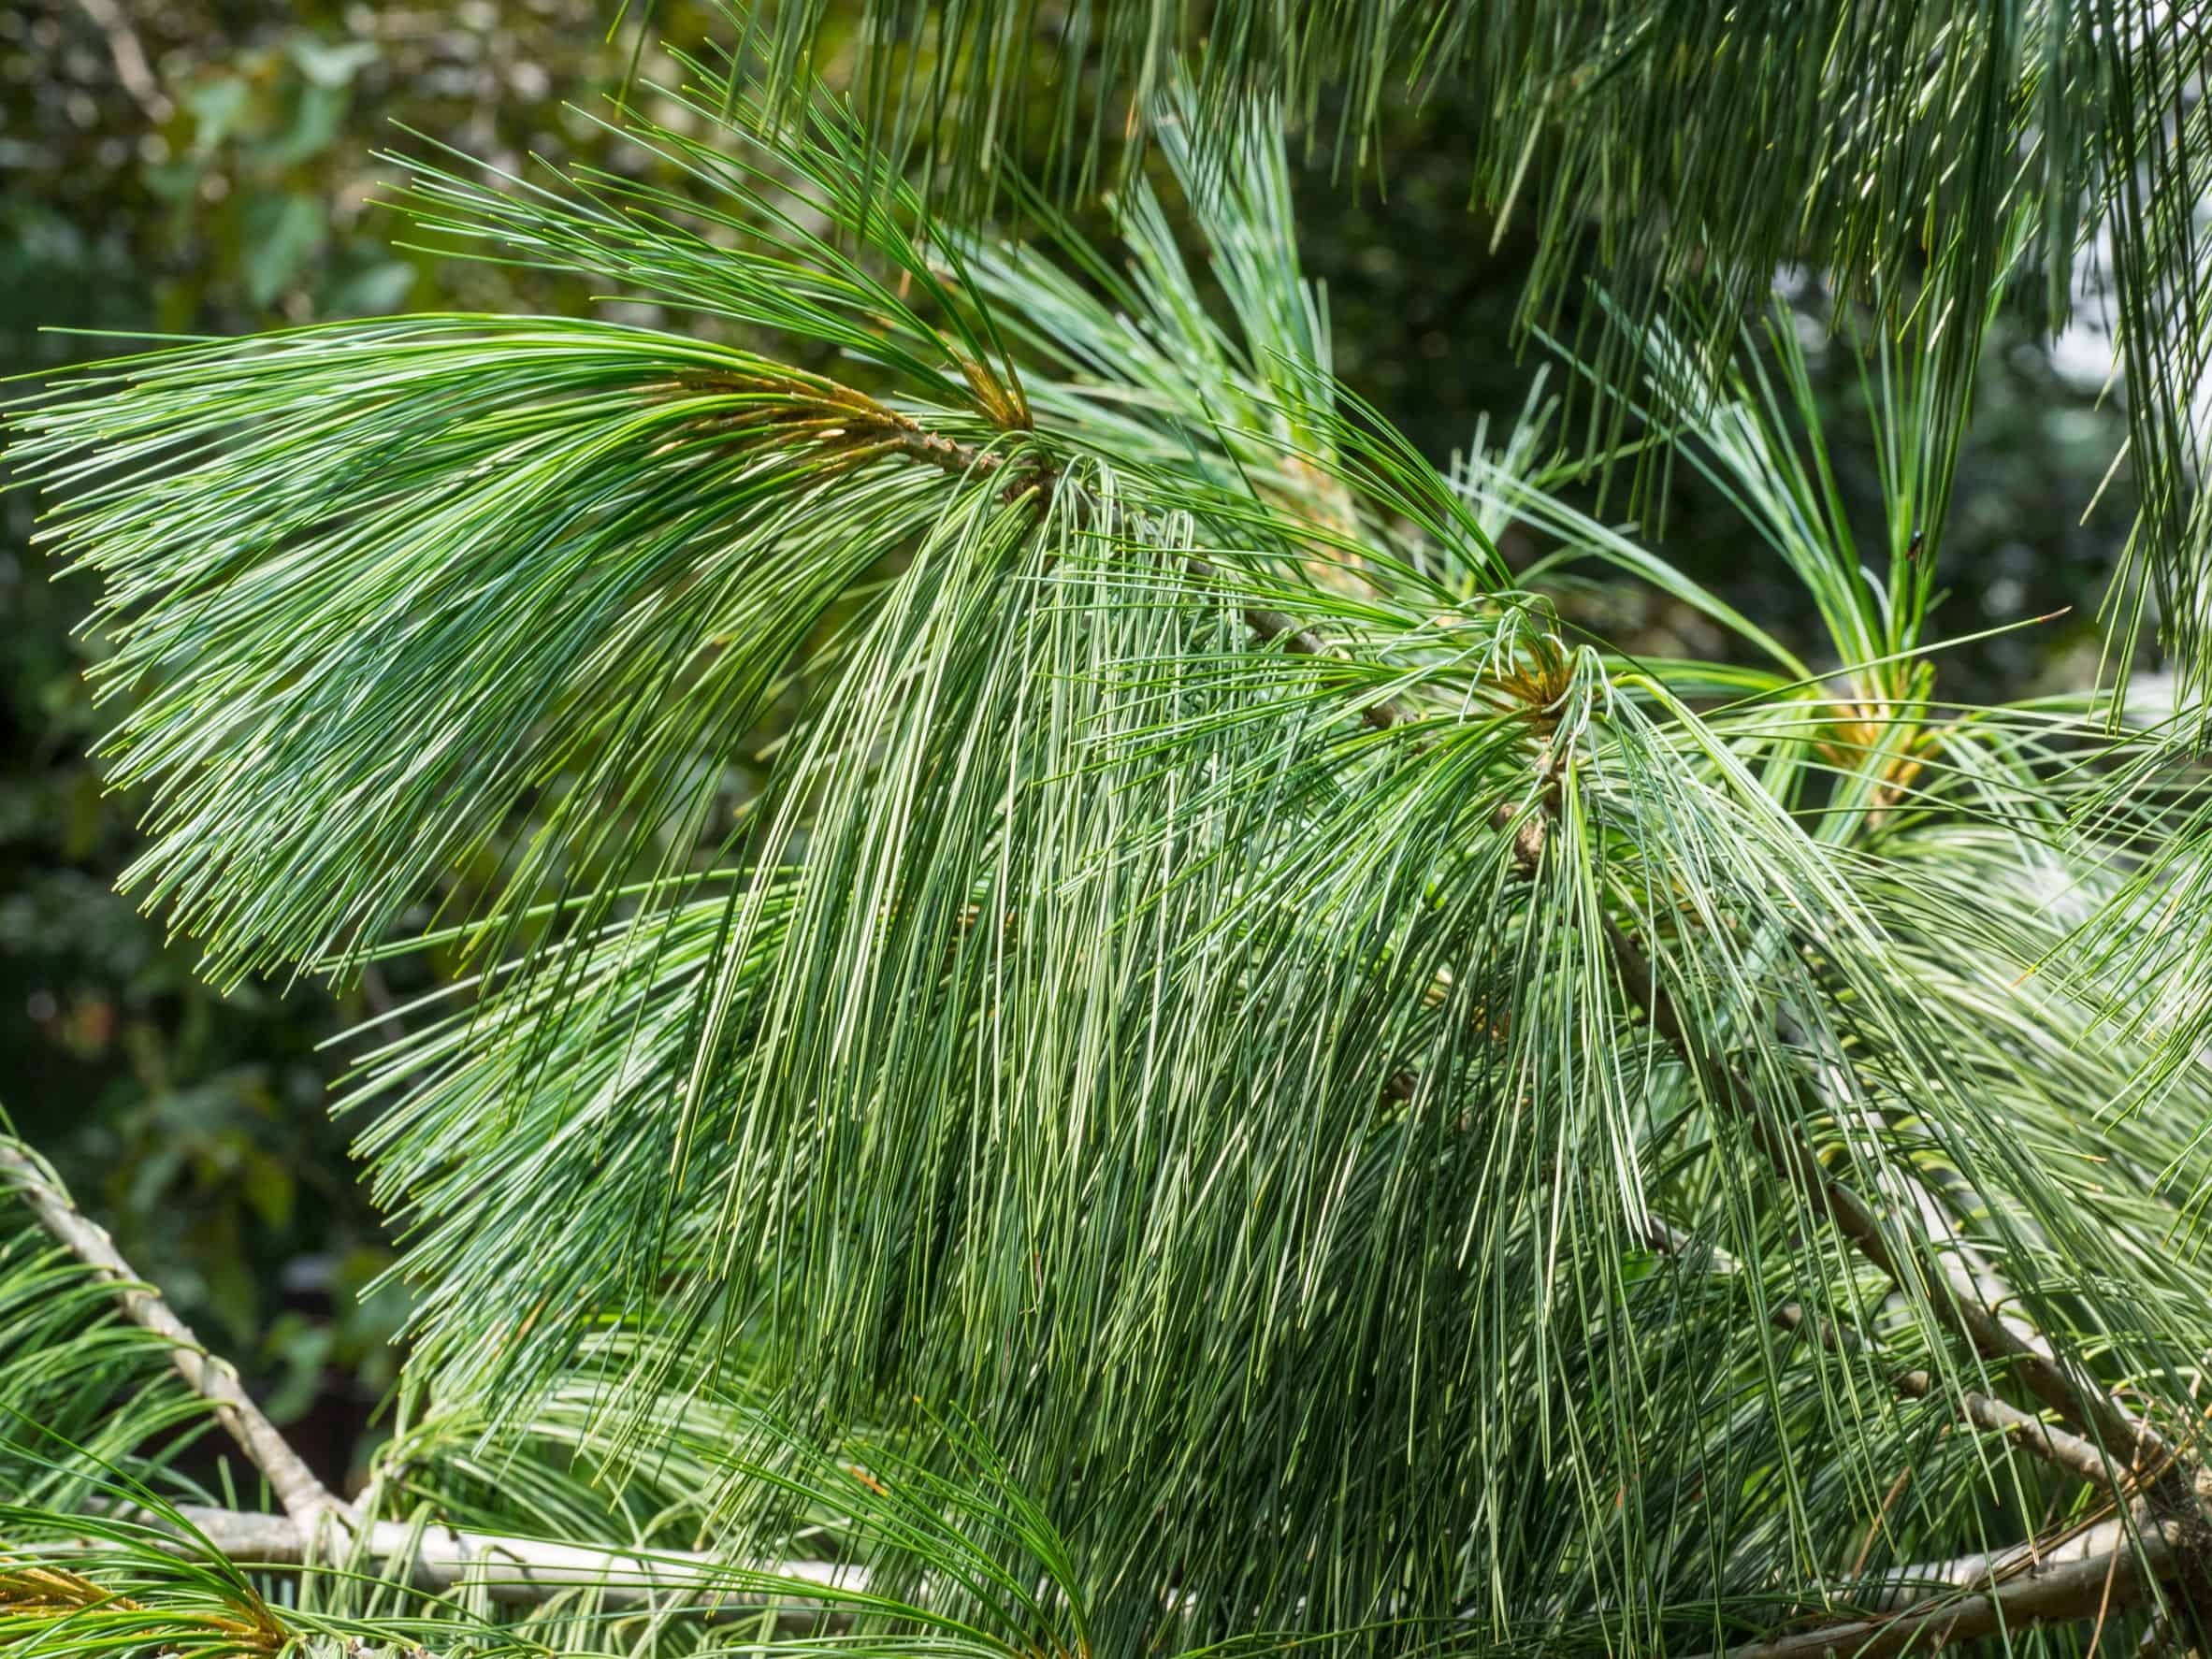 the Eastern white pine is an amazing evergreen tree